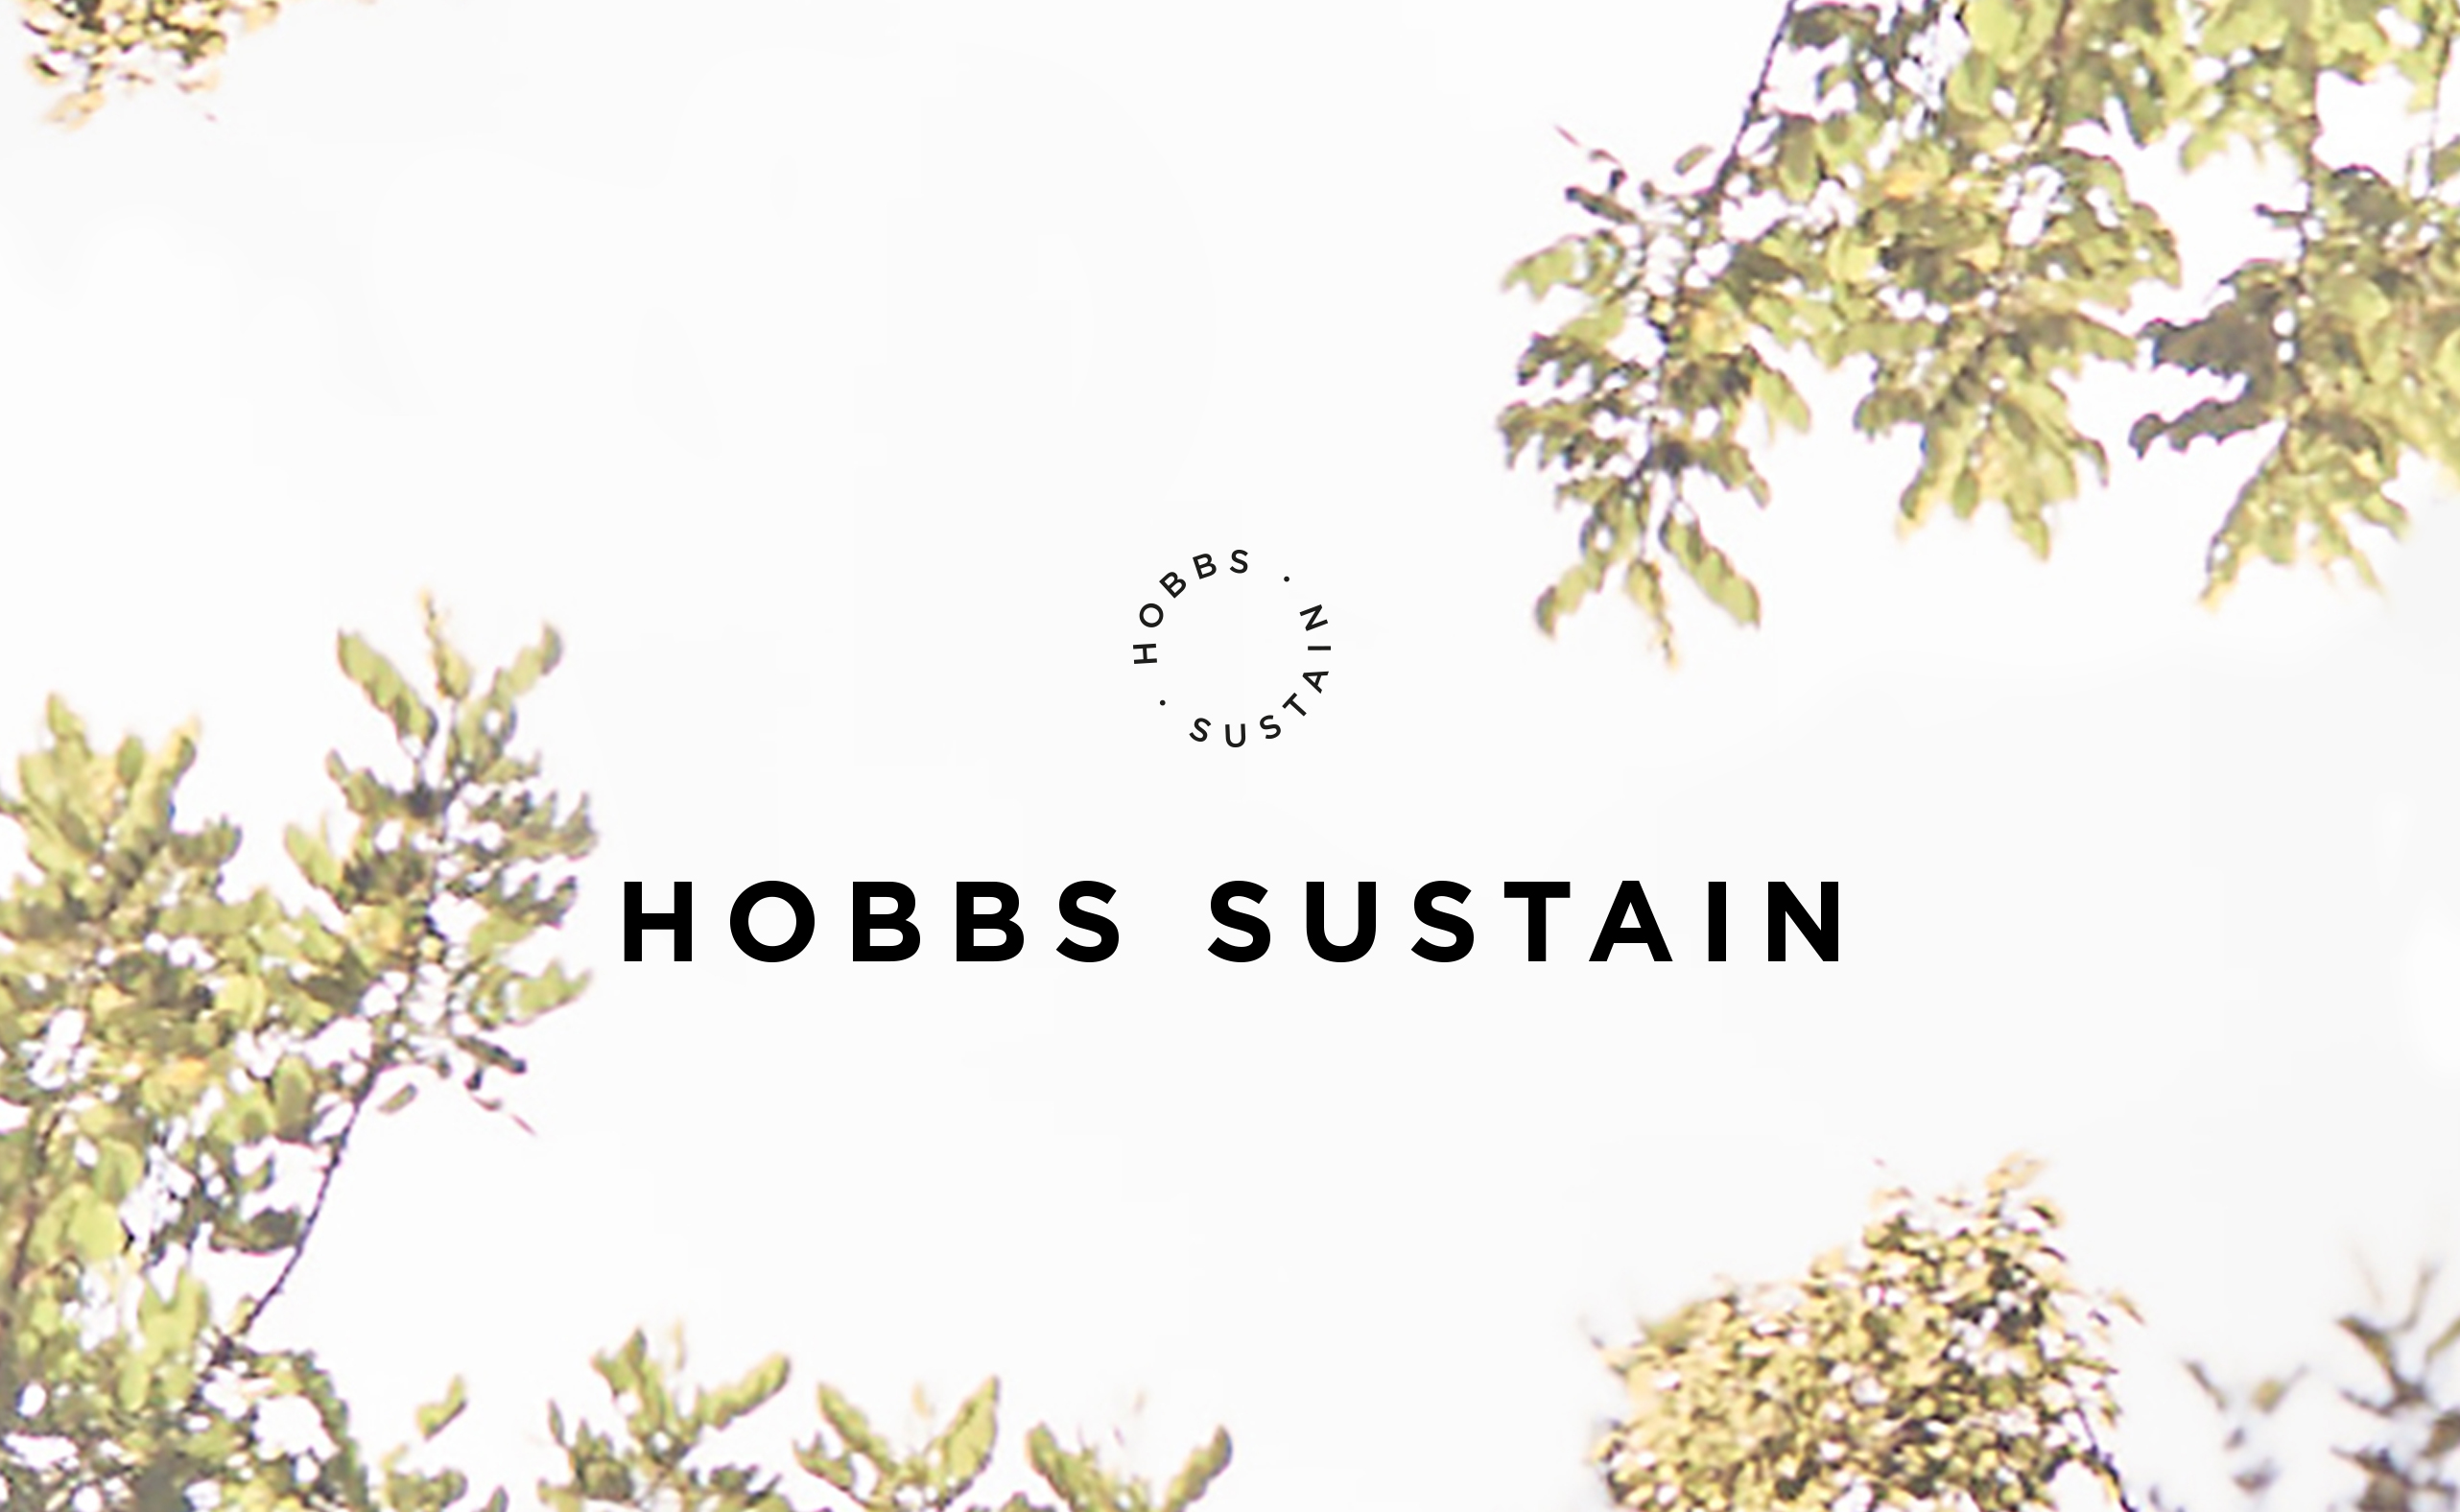 A white sky through the branches of trees Hobbs sustain title overlayed